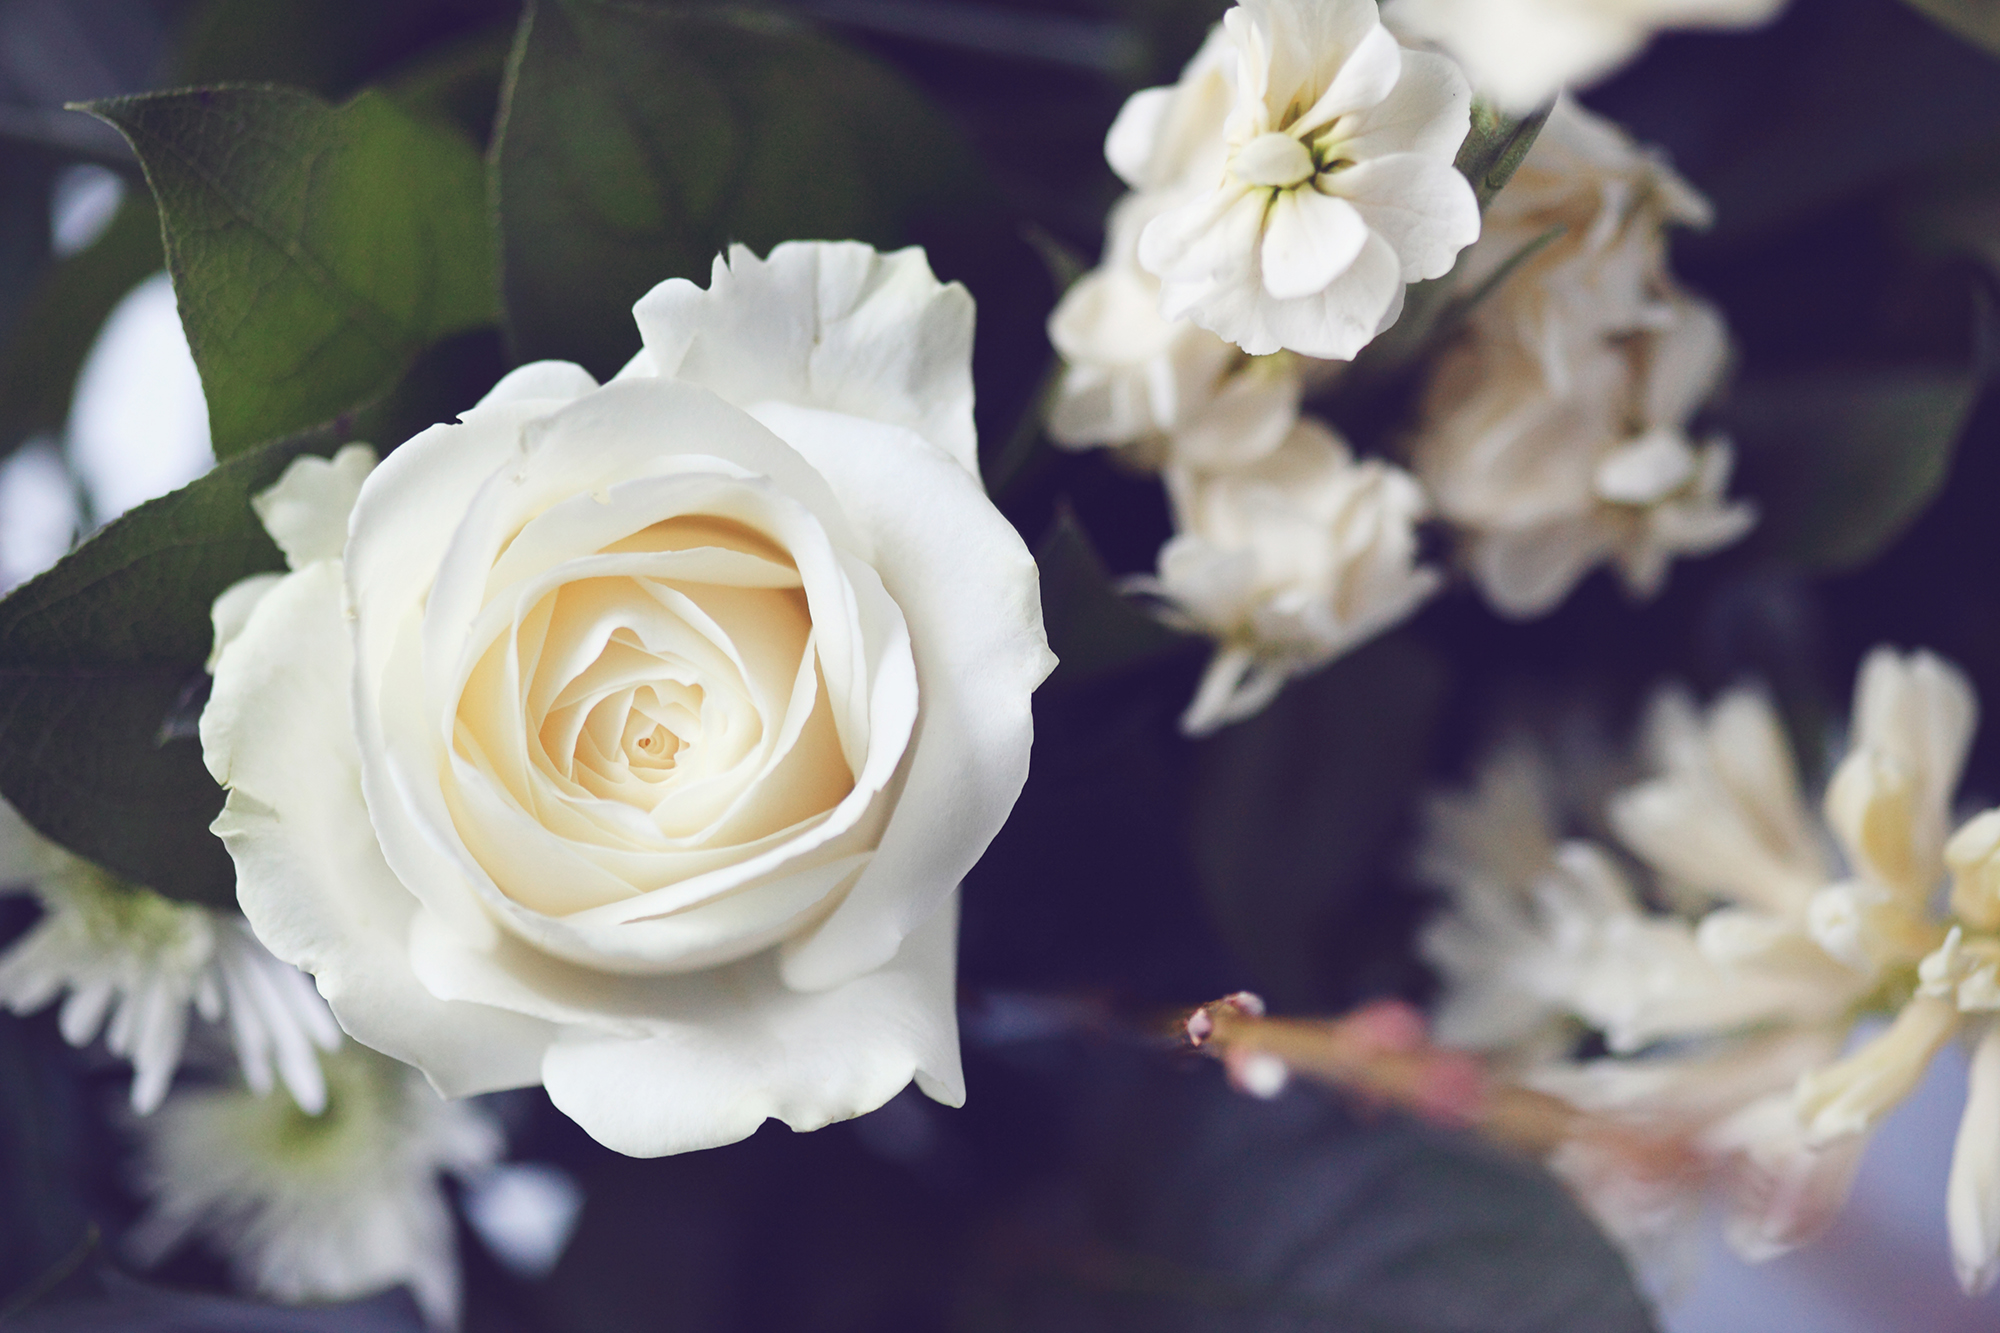 White rose purity